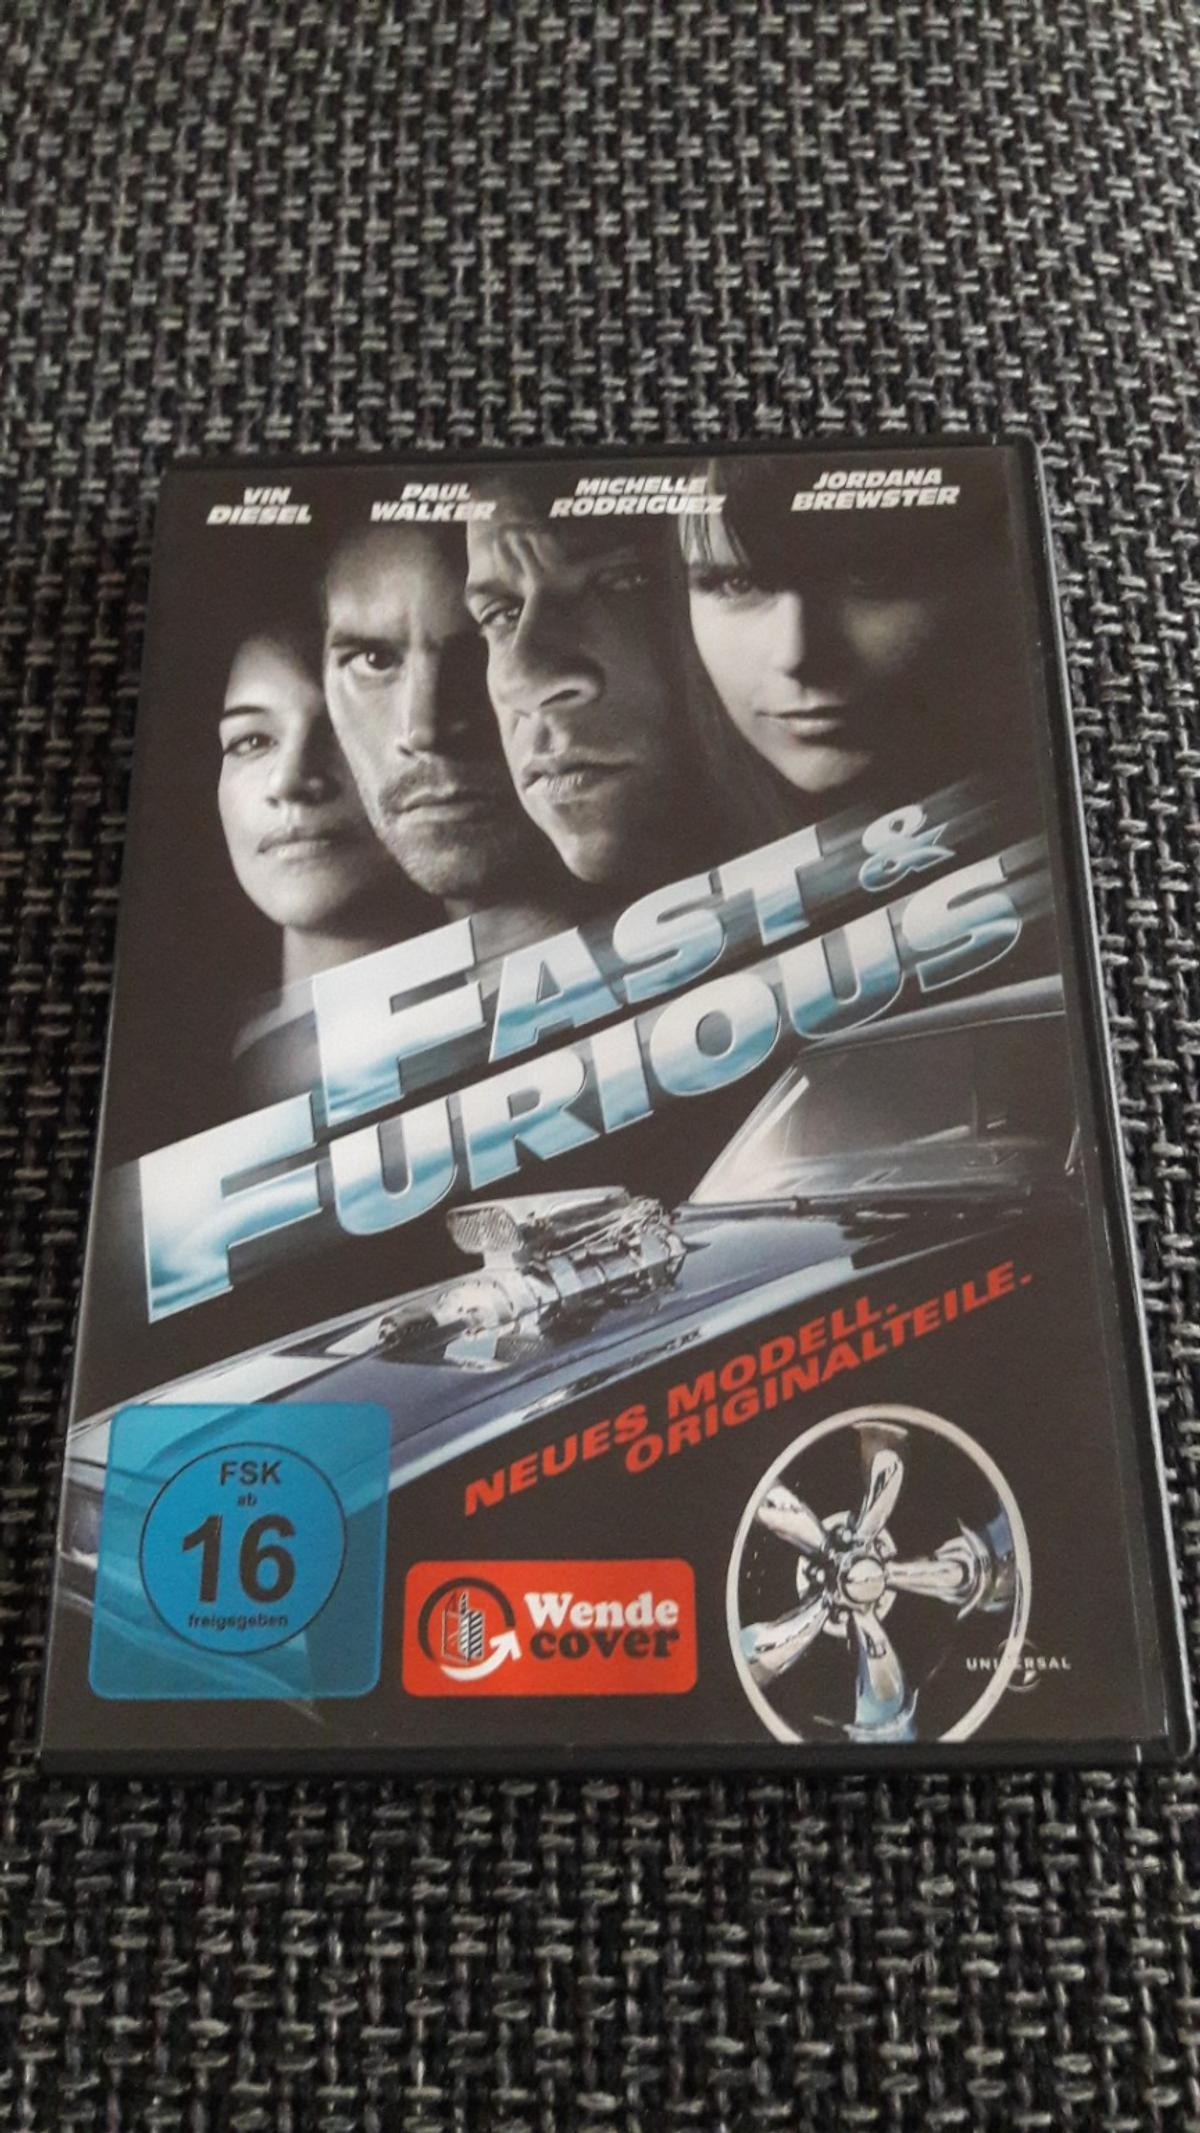 Fast Furious Neues Modell Originalteile Dvd In 67360 Lingenfeld For 3 50 For Sale Shpock